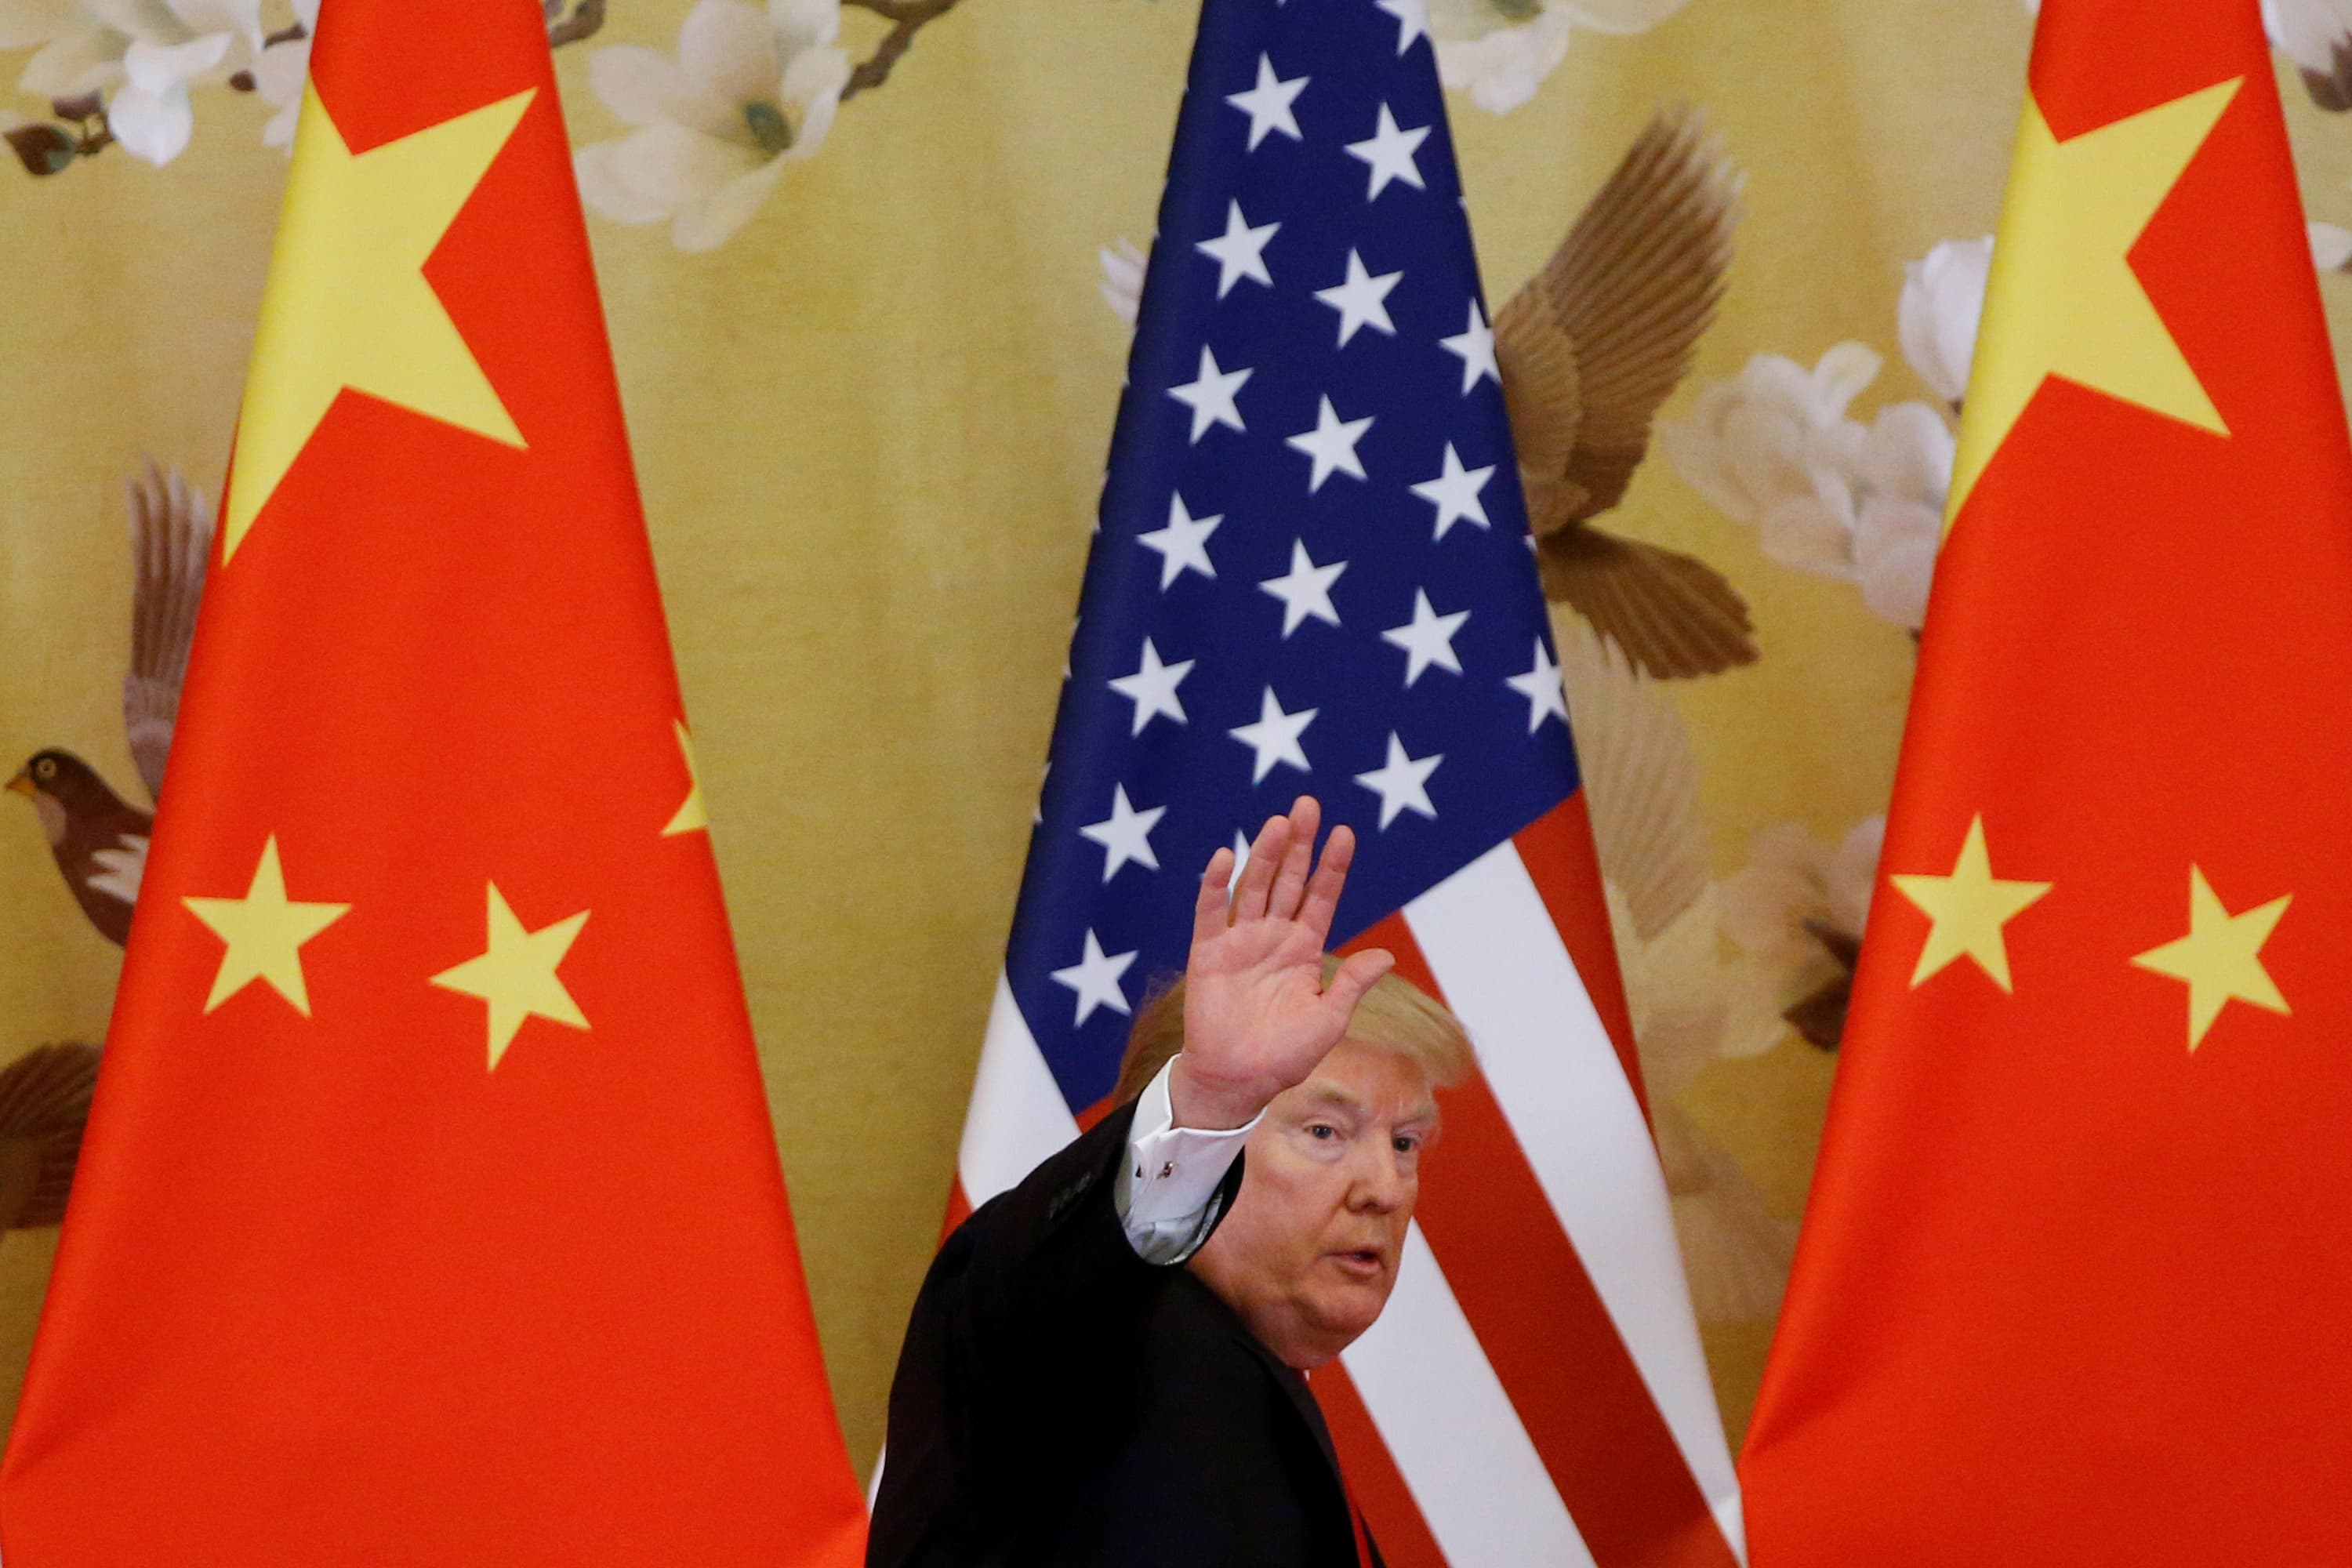 American businesses in China: Tariffs are hurting us